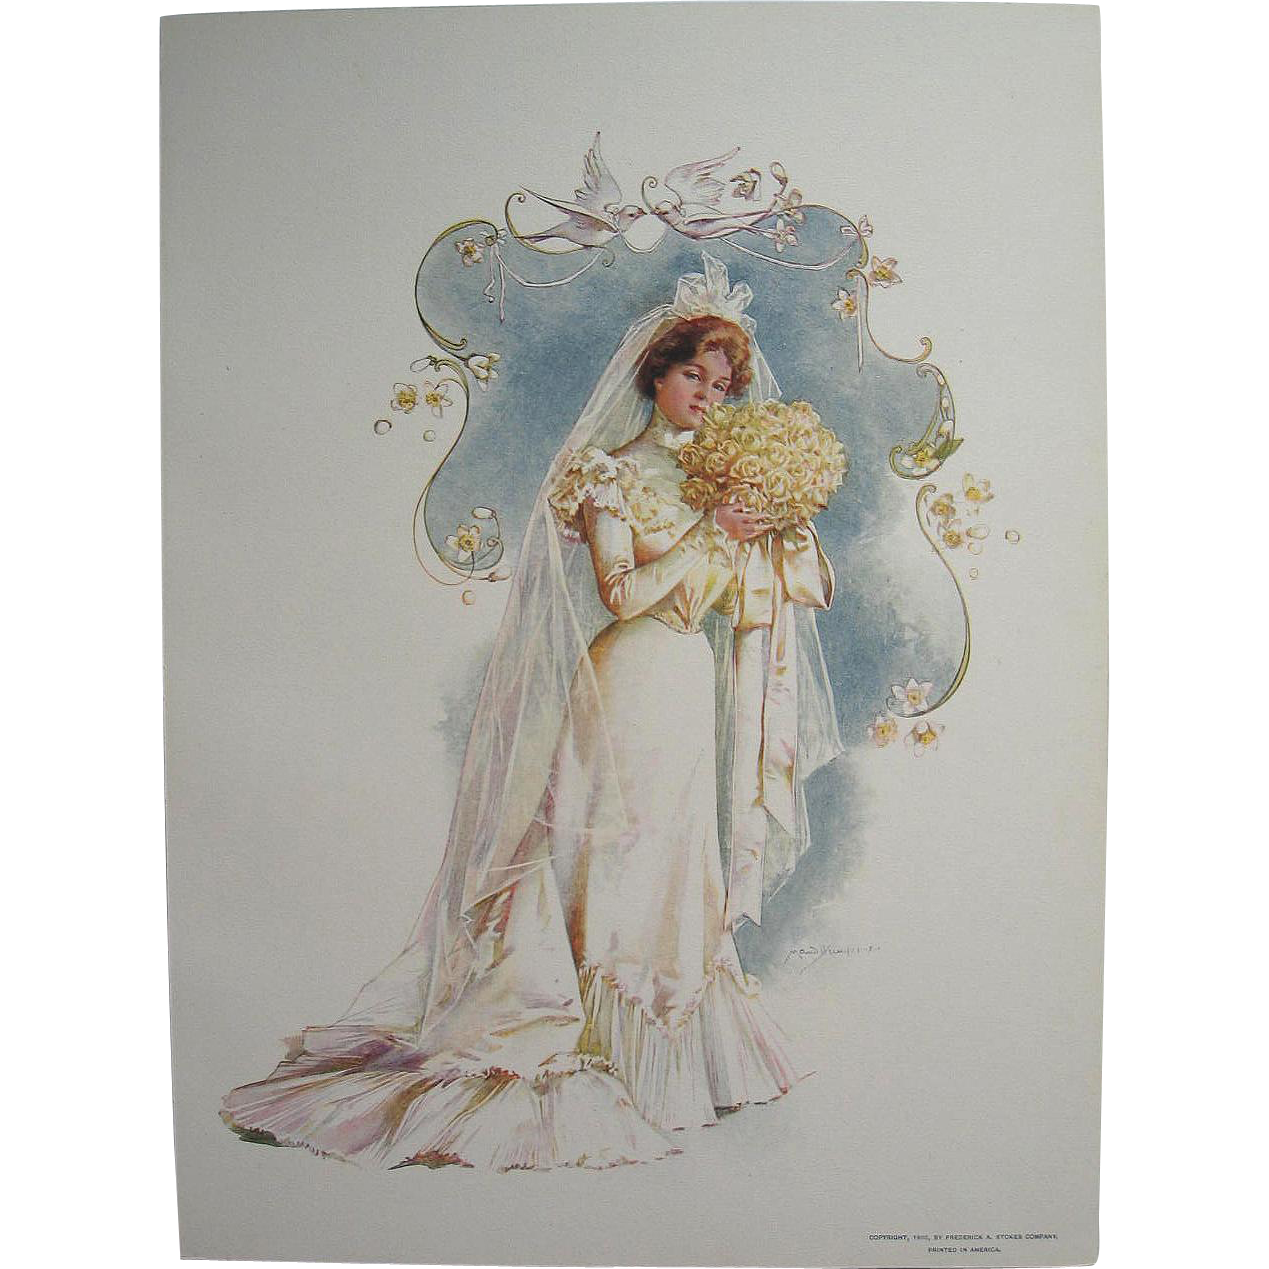 Four Maud Humphrey Bride Print s c1900 Antique